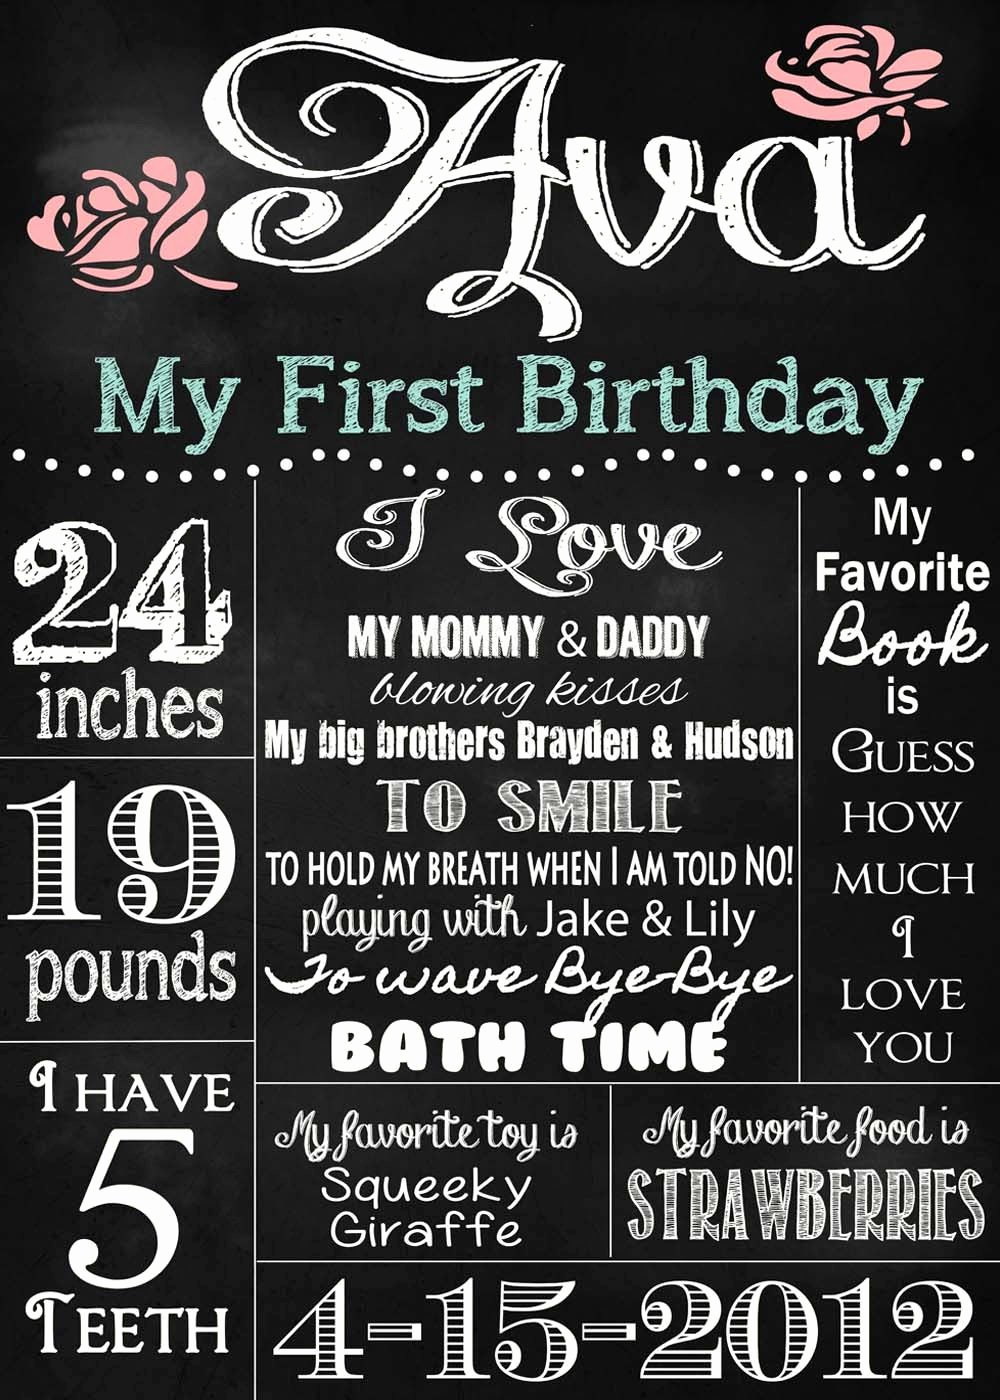 First Birthday Board Template Awesome Shabby Chic Vintage 20x30 Chalkboard Sign by